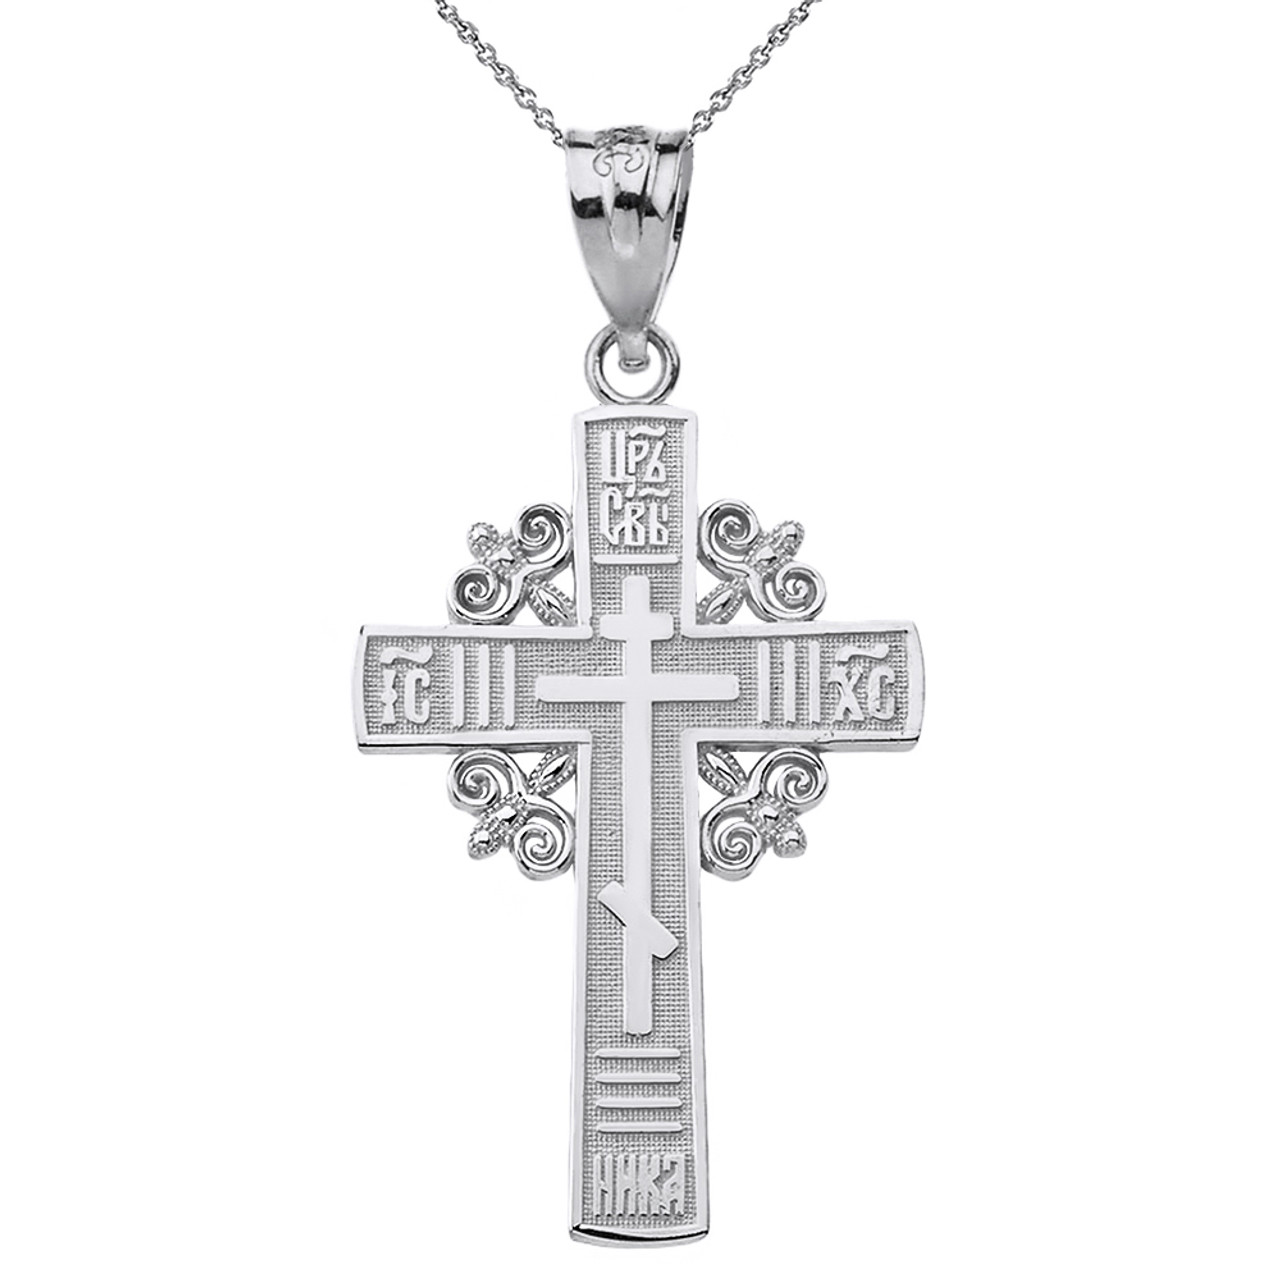 Antique Silver Russian Orthodox Cross Pendant sterling silver 925  Crucifix Pendant  cross necklace